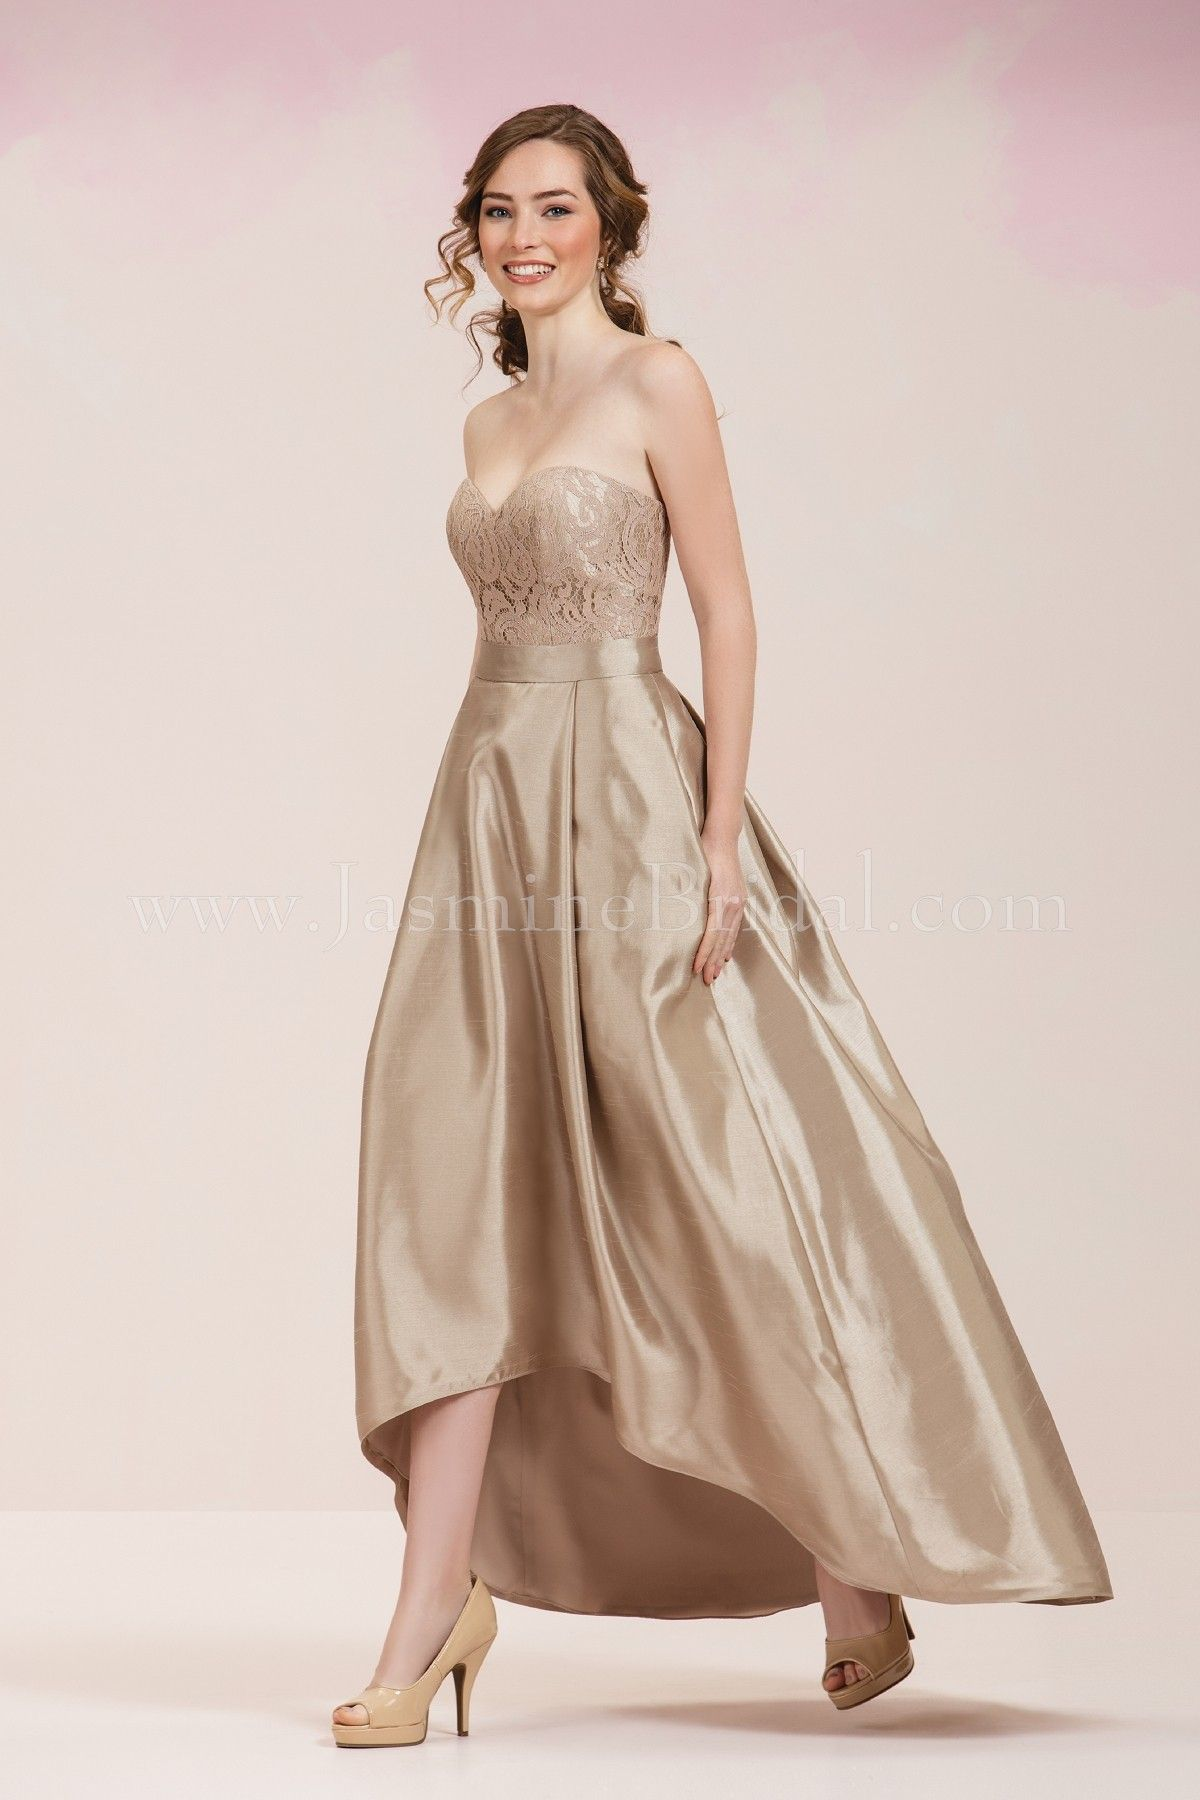 Jasmine Bridal Bridesmaid Dress Bridesmaids Style P186061 In Latte